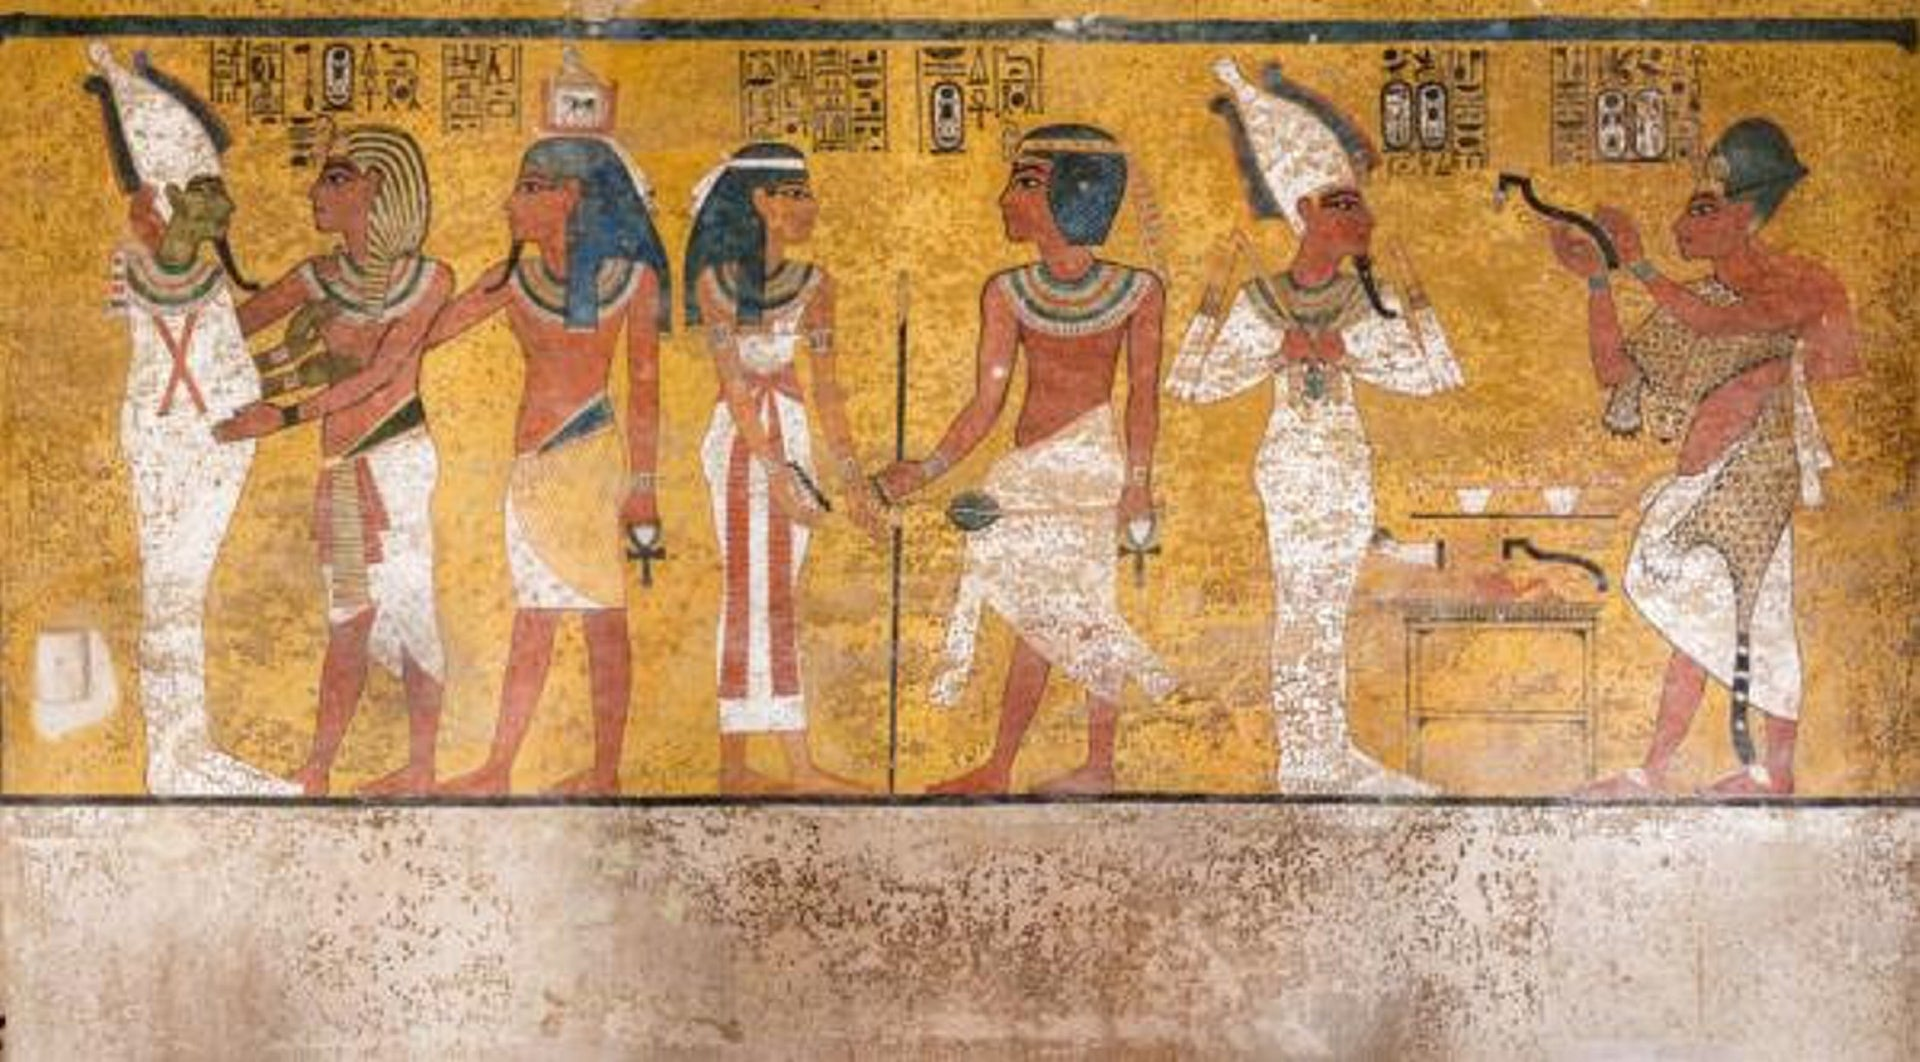 The north wall of the burial chamber depicts three separate scenes.